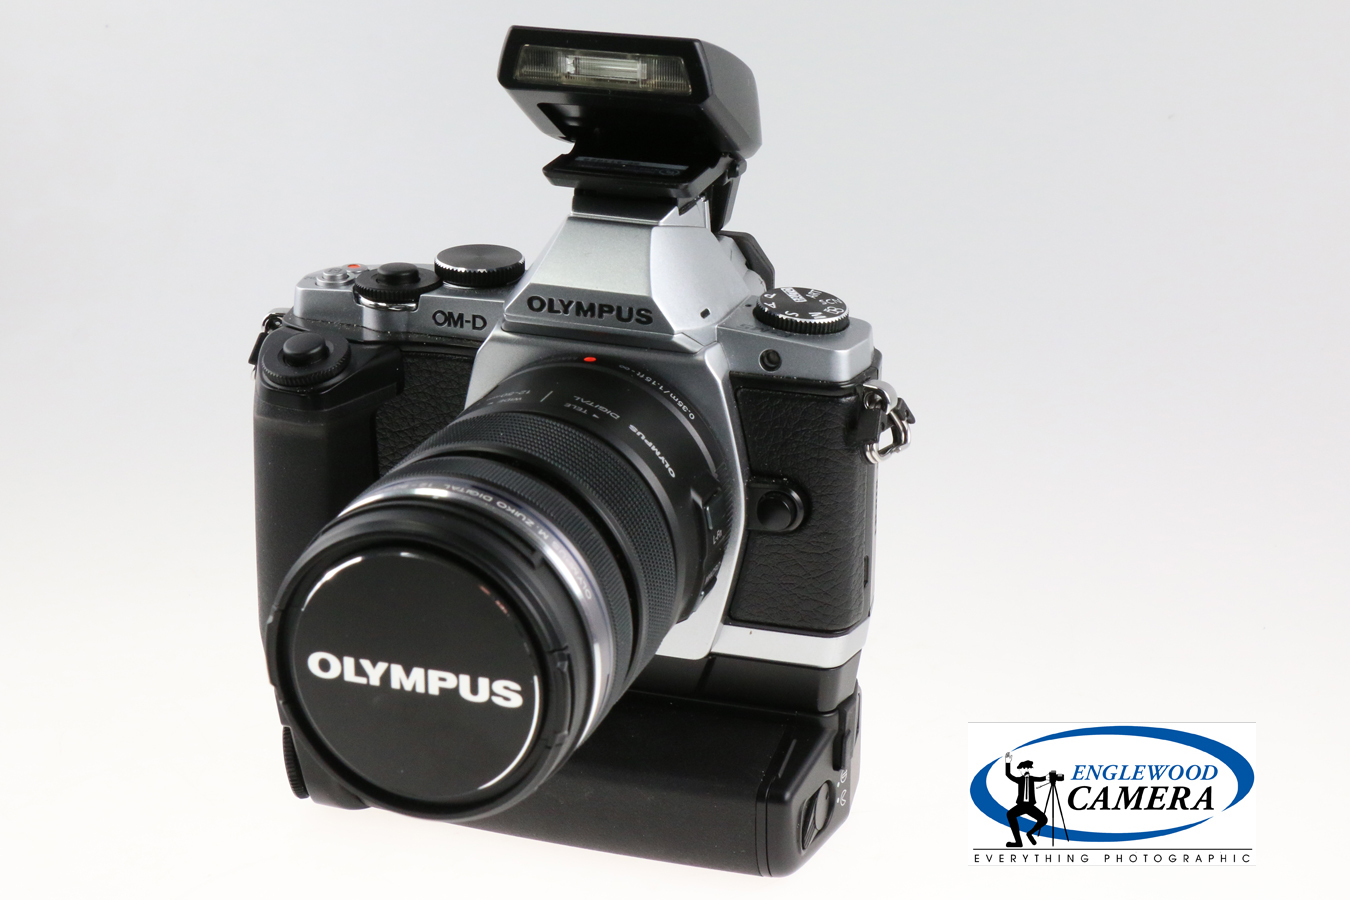 Camera Pre Owned Dslr Camera used olympus englewood camera omd e m5 camera